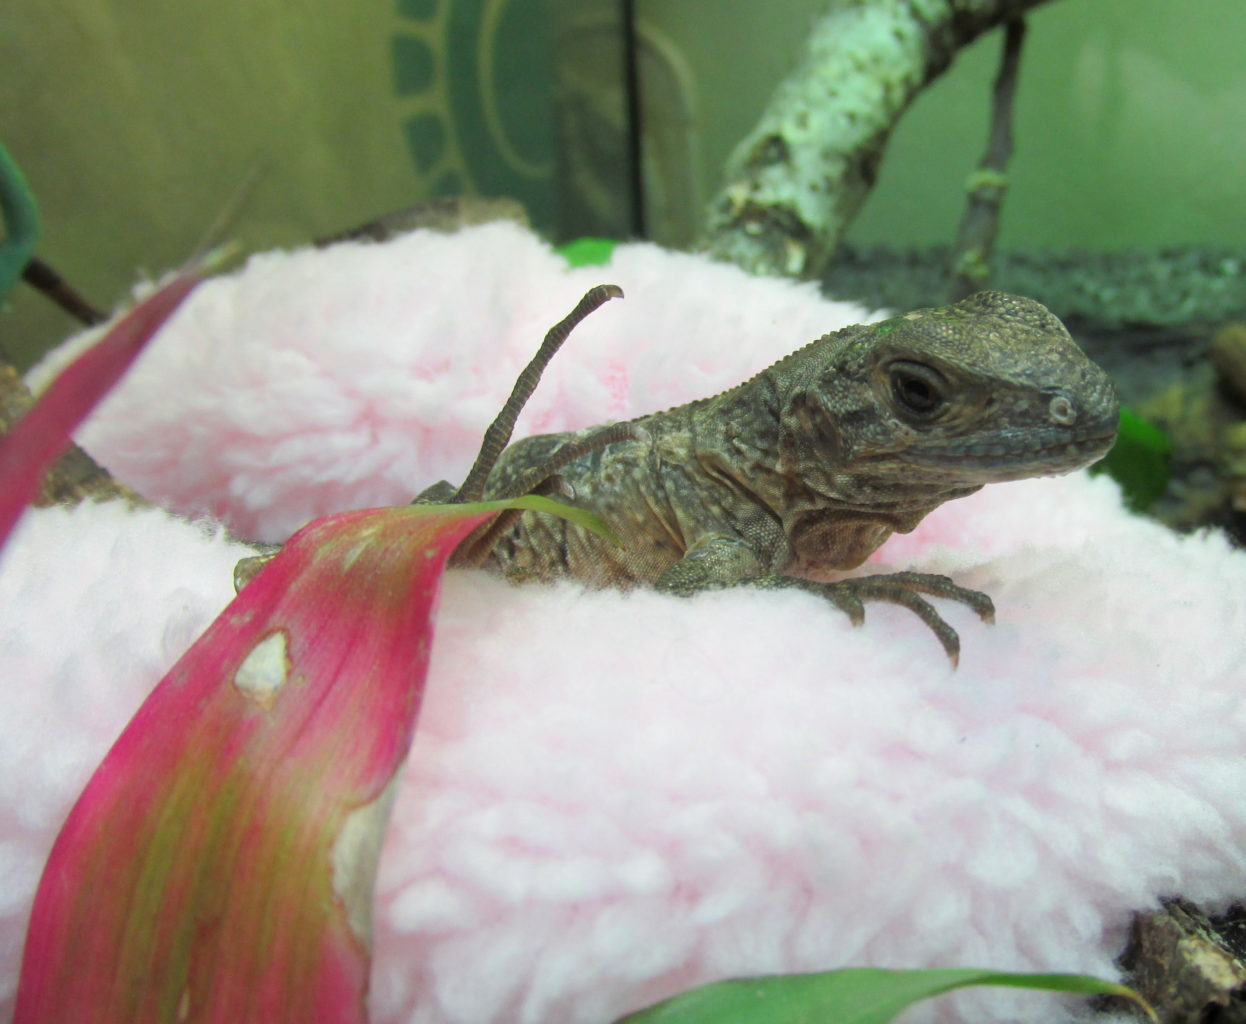 a lizard, a Ctenosaura similis, on a pink bed, surrounded by green plants and a pink leaf